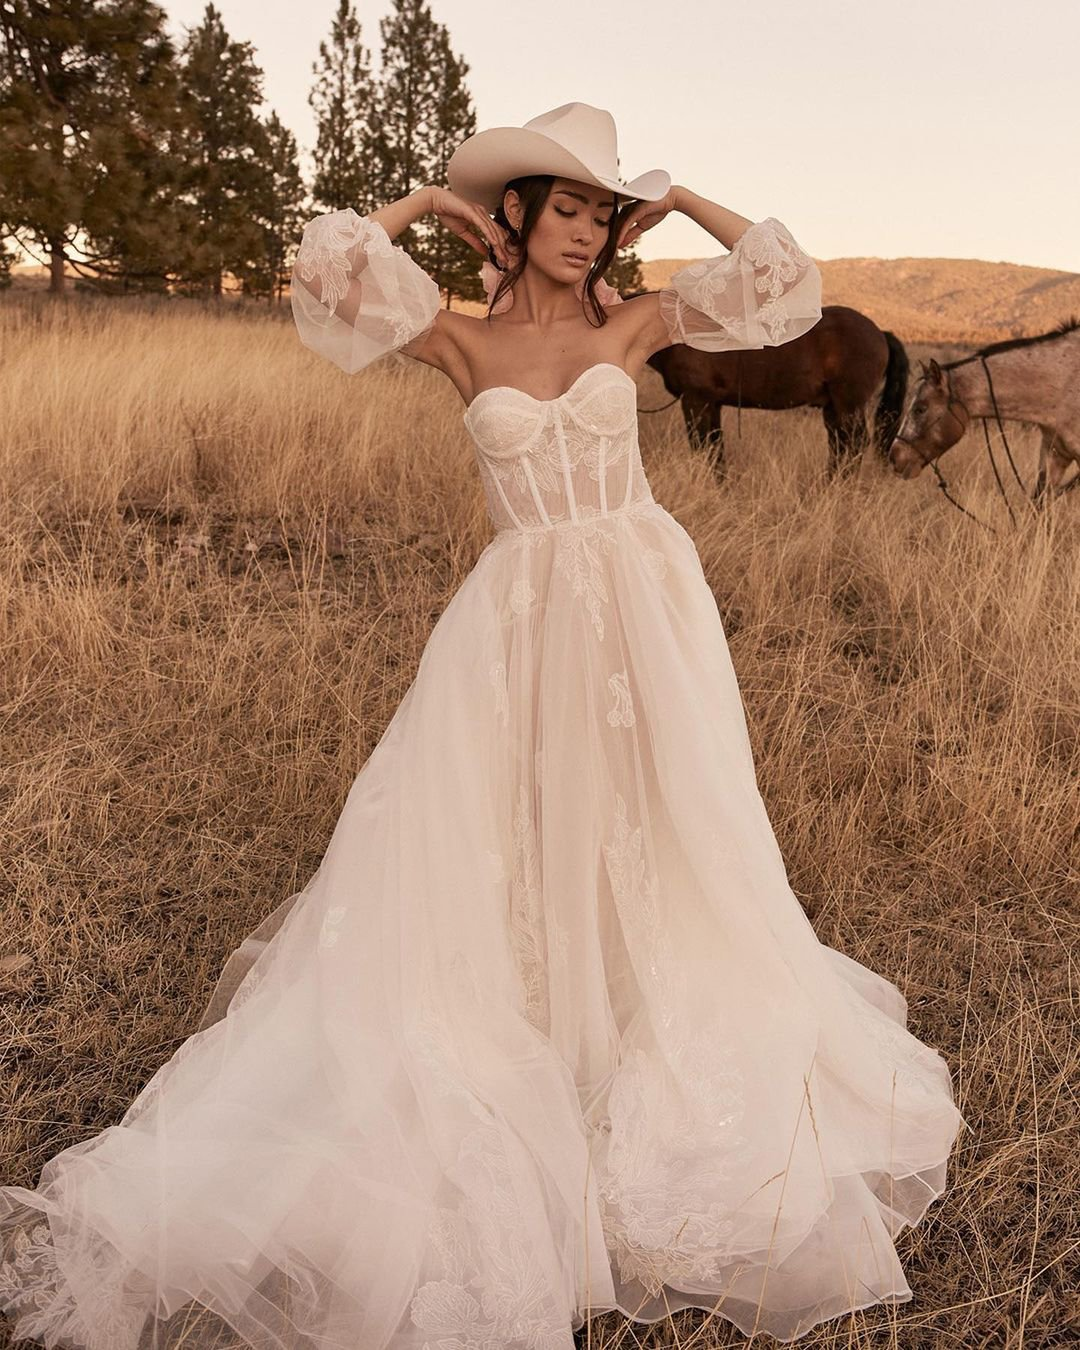 country style wedding dresses a line with puff sleeves sweetheart neckline barn tara_lauren